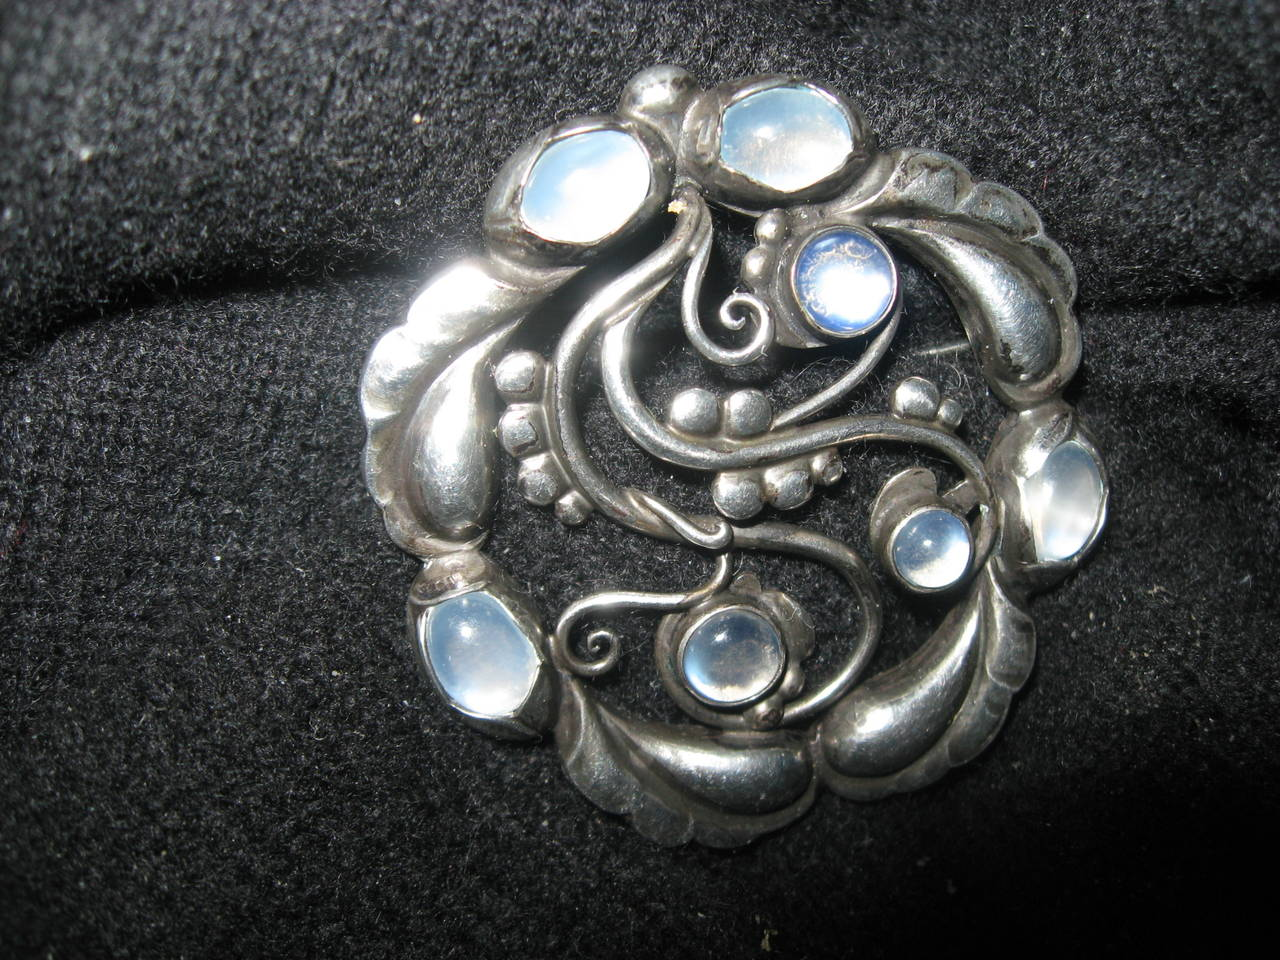 enamel an nyr and brooch lot gold details lalique by art nouveau moonstone enam rene lotfinder